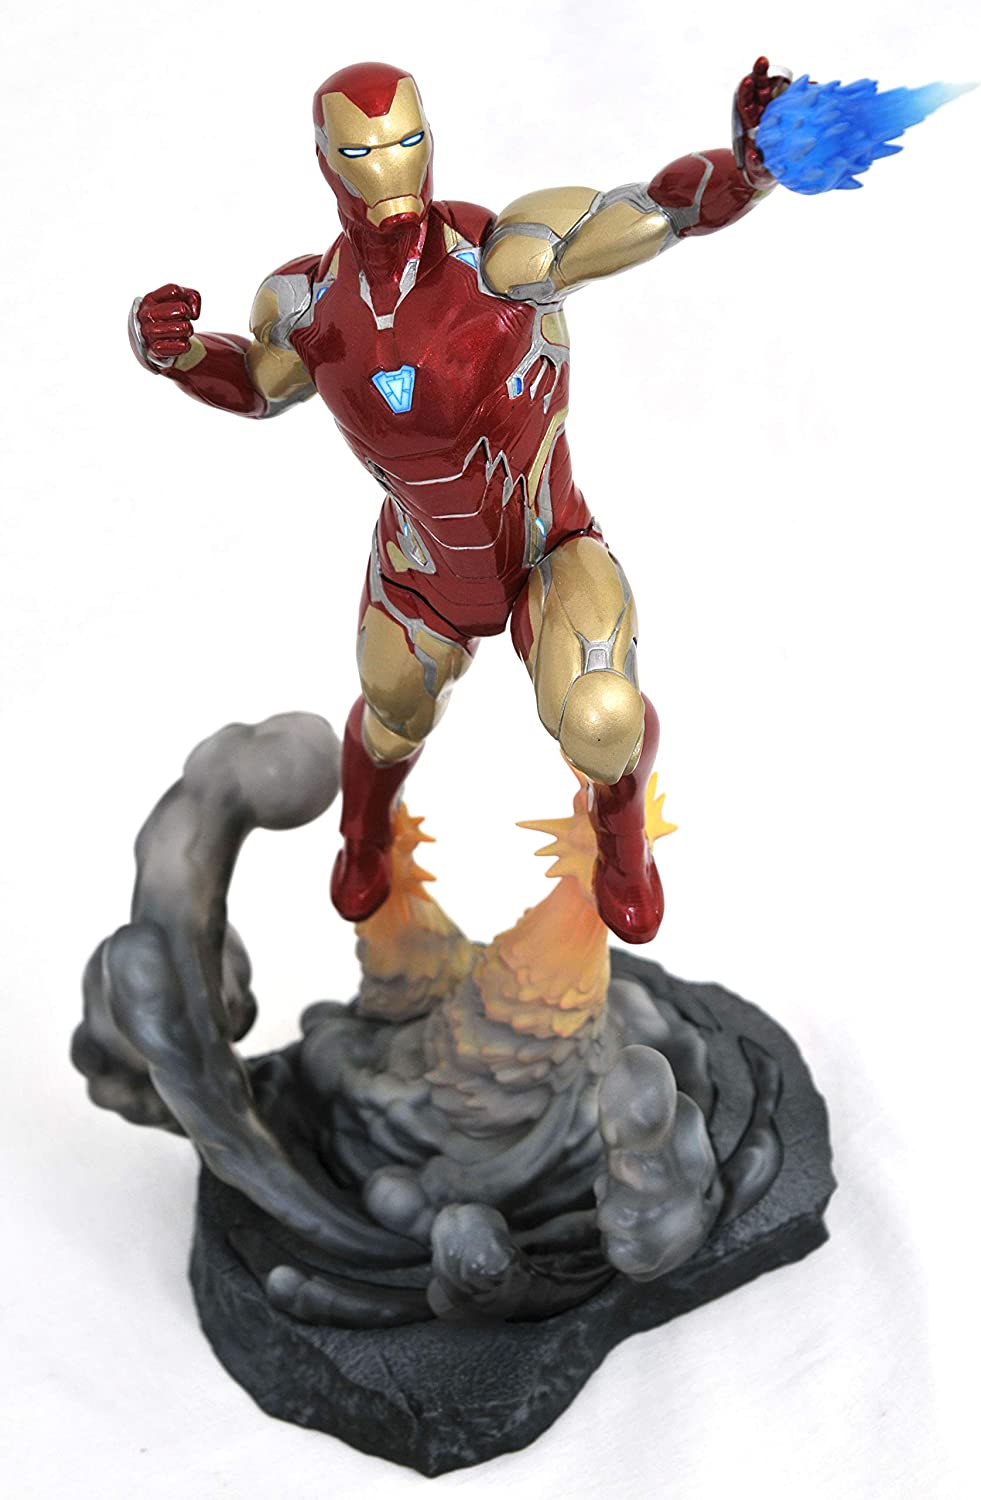 MARVEL GALERIE Avengers Infinity War Iron Man Mark 50 Statue